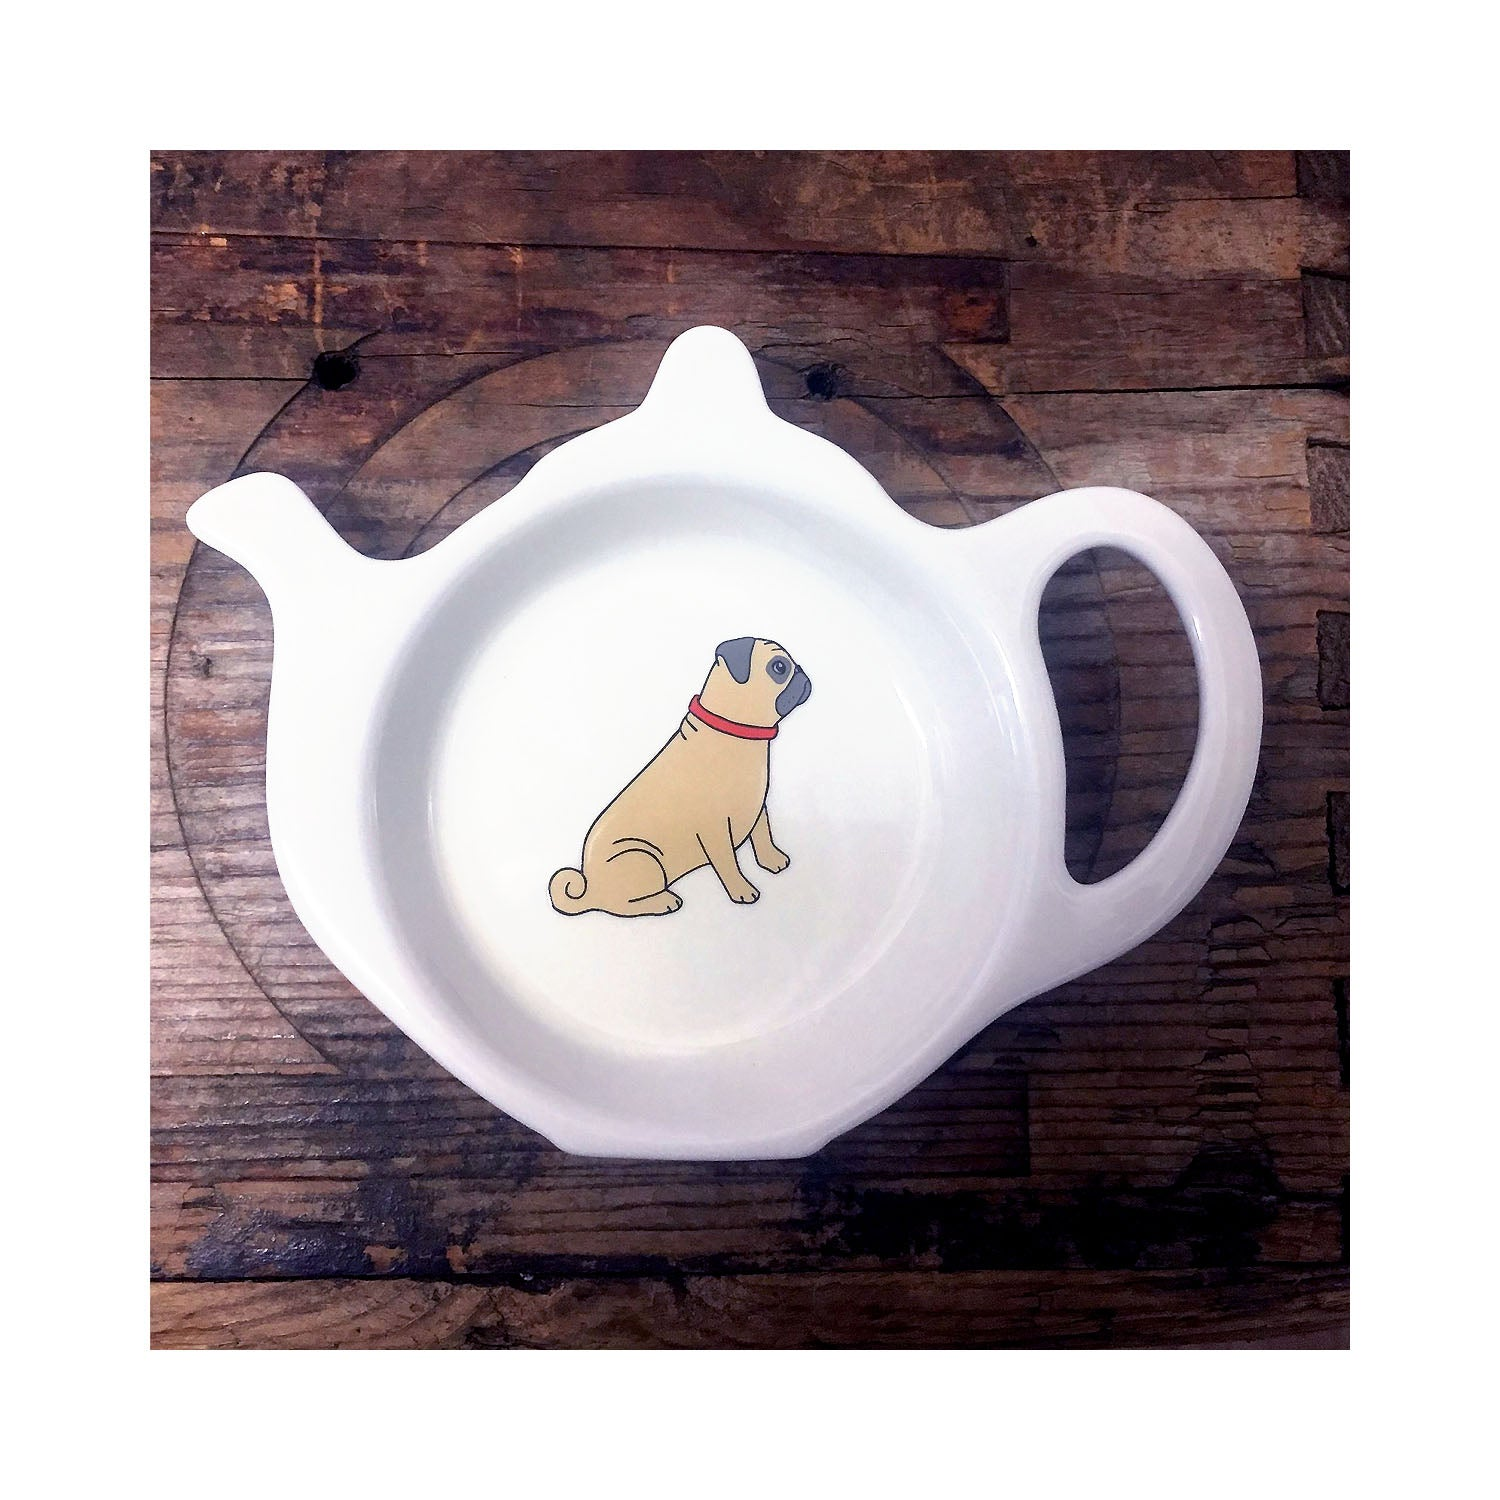 Dog Lover Gifts available at Dog Krazy Gifts - Winston The Pug Teabag Dish - part of the Sweet William range available from Dog Krazy Gifts